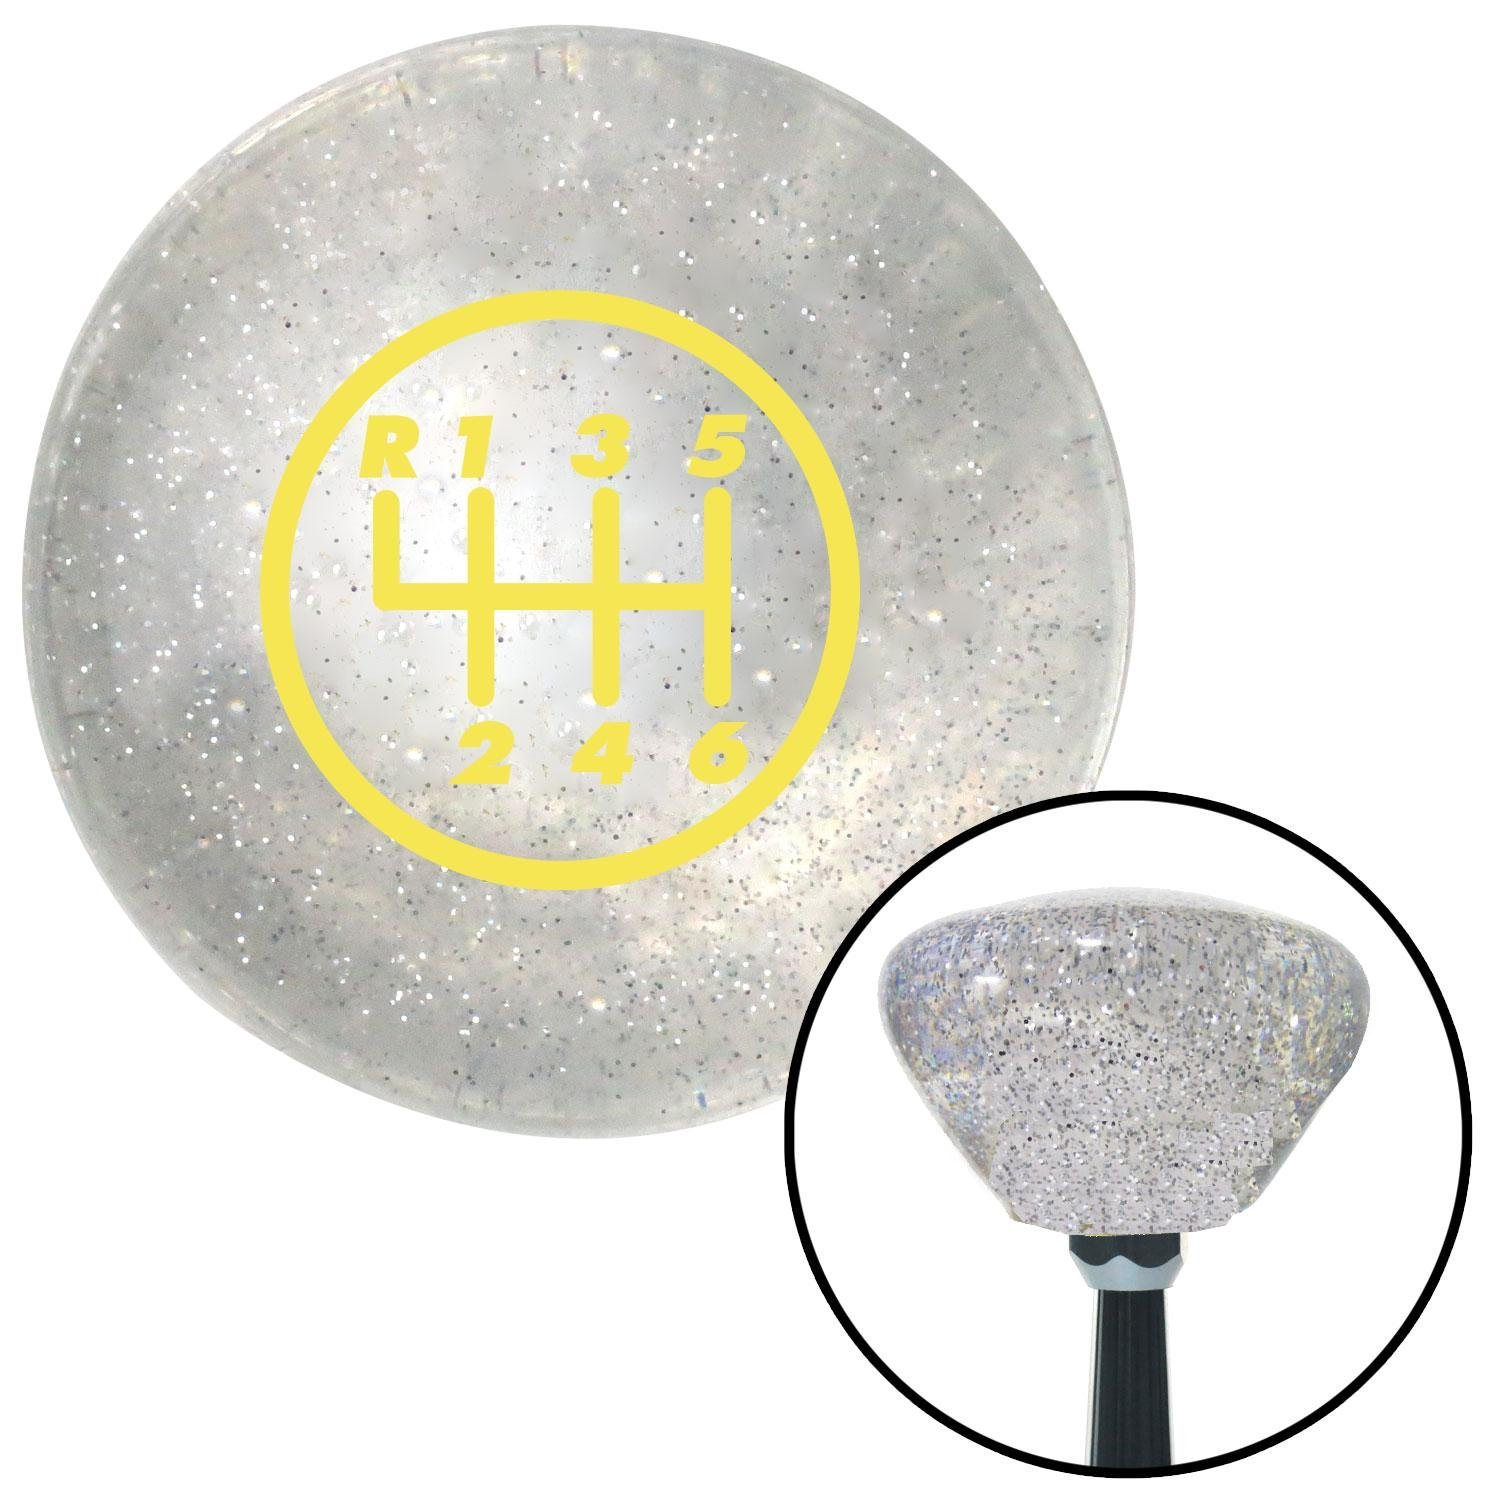 American Shifter 159148 Clear Retro Metal Flake Shift Knob with M16 x 1.5 Insert Yellow 6 Speed Shift Pattern - 6DR-RUL